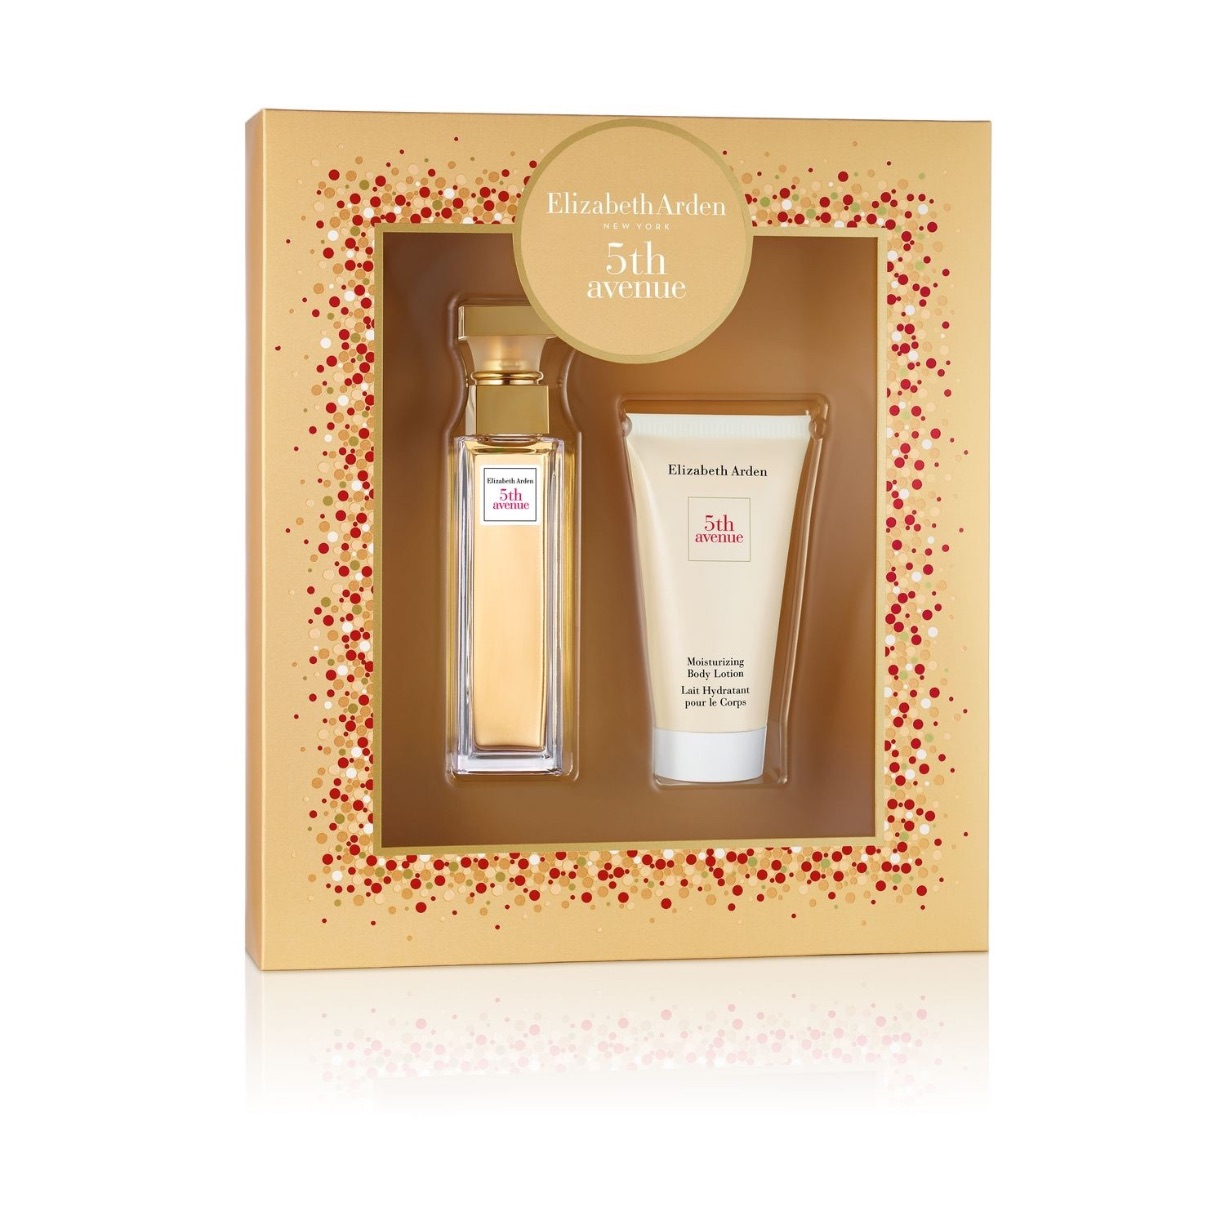 Elizabeth Arden 5th Avenue Eau de Parfum 1.0oz (30ml) 2018 Gift Set